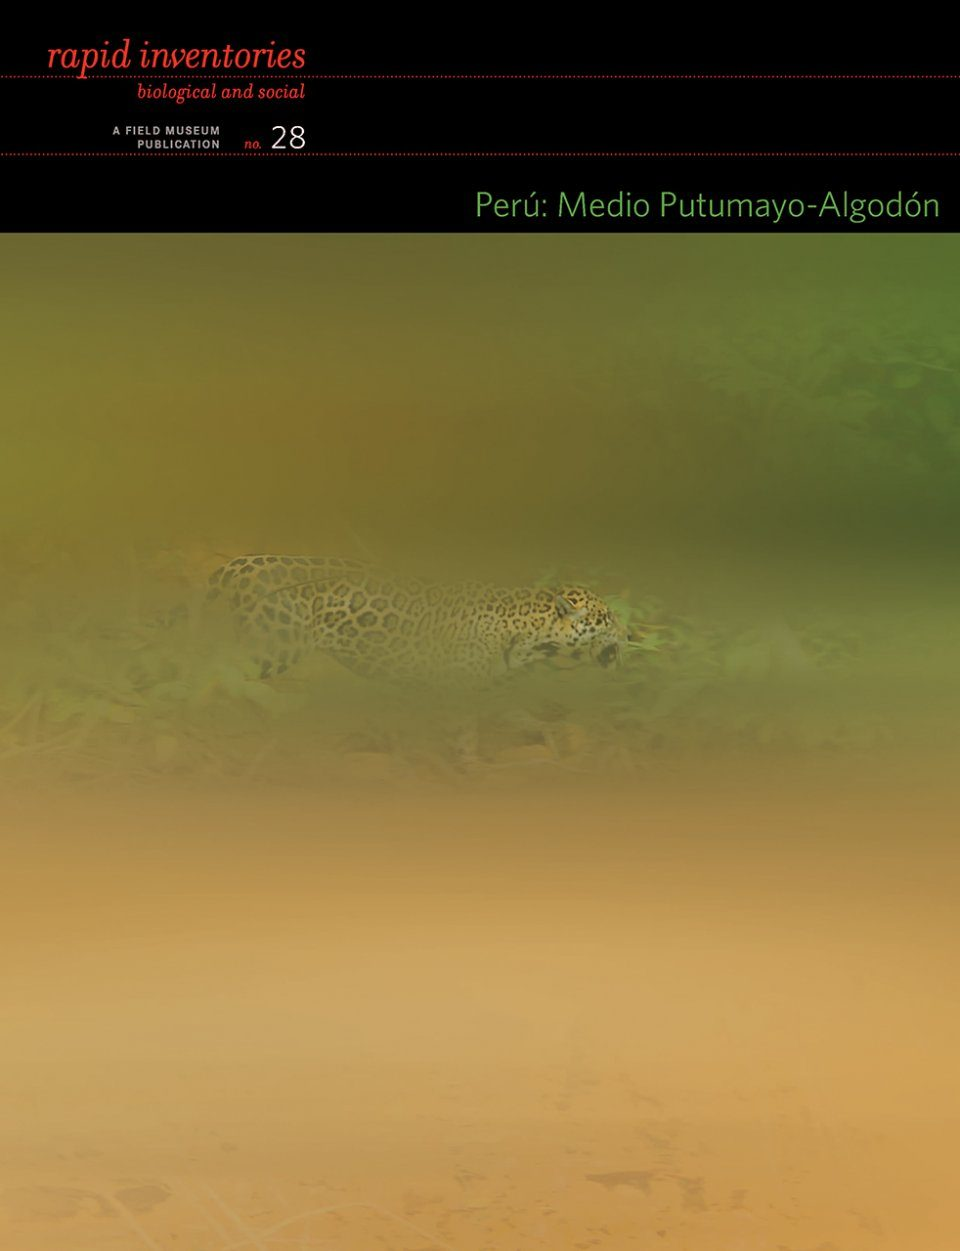 Rapid Biological and Social Inventories Report, Volume 28: Perú: Medio Putumayo-Algodón [English / Spanish]